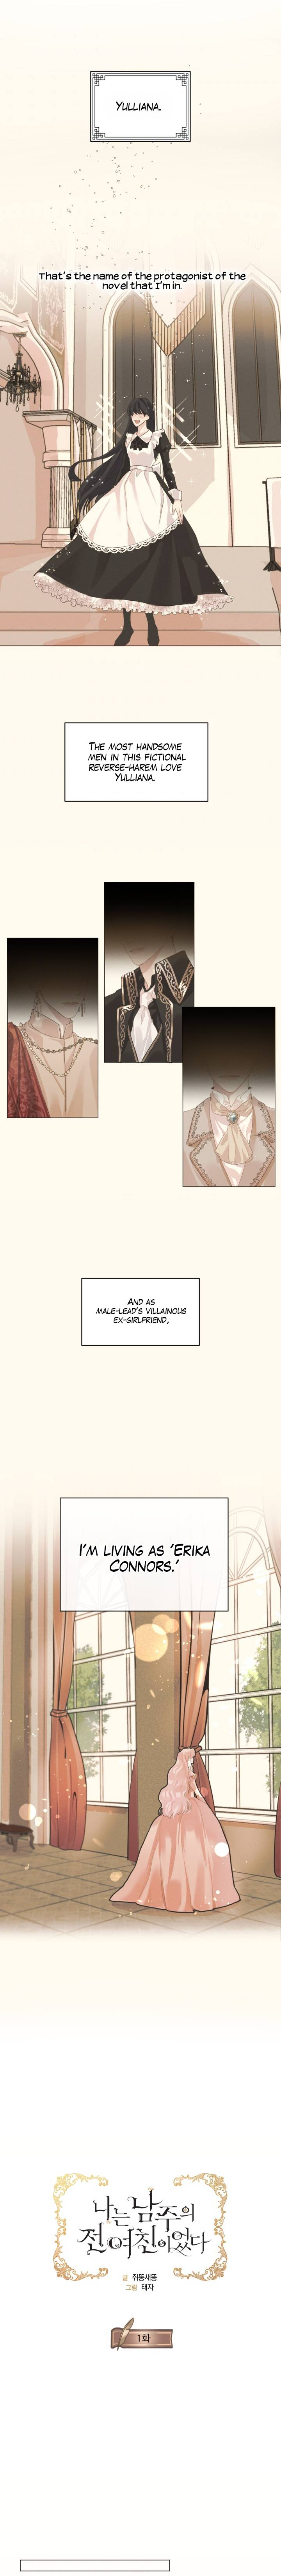 I Am The Male Lead'S Ex-Girlfriend - chapter 1 - #2